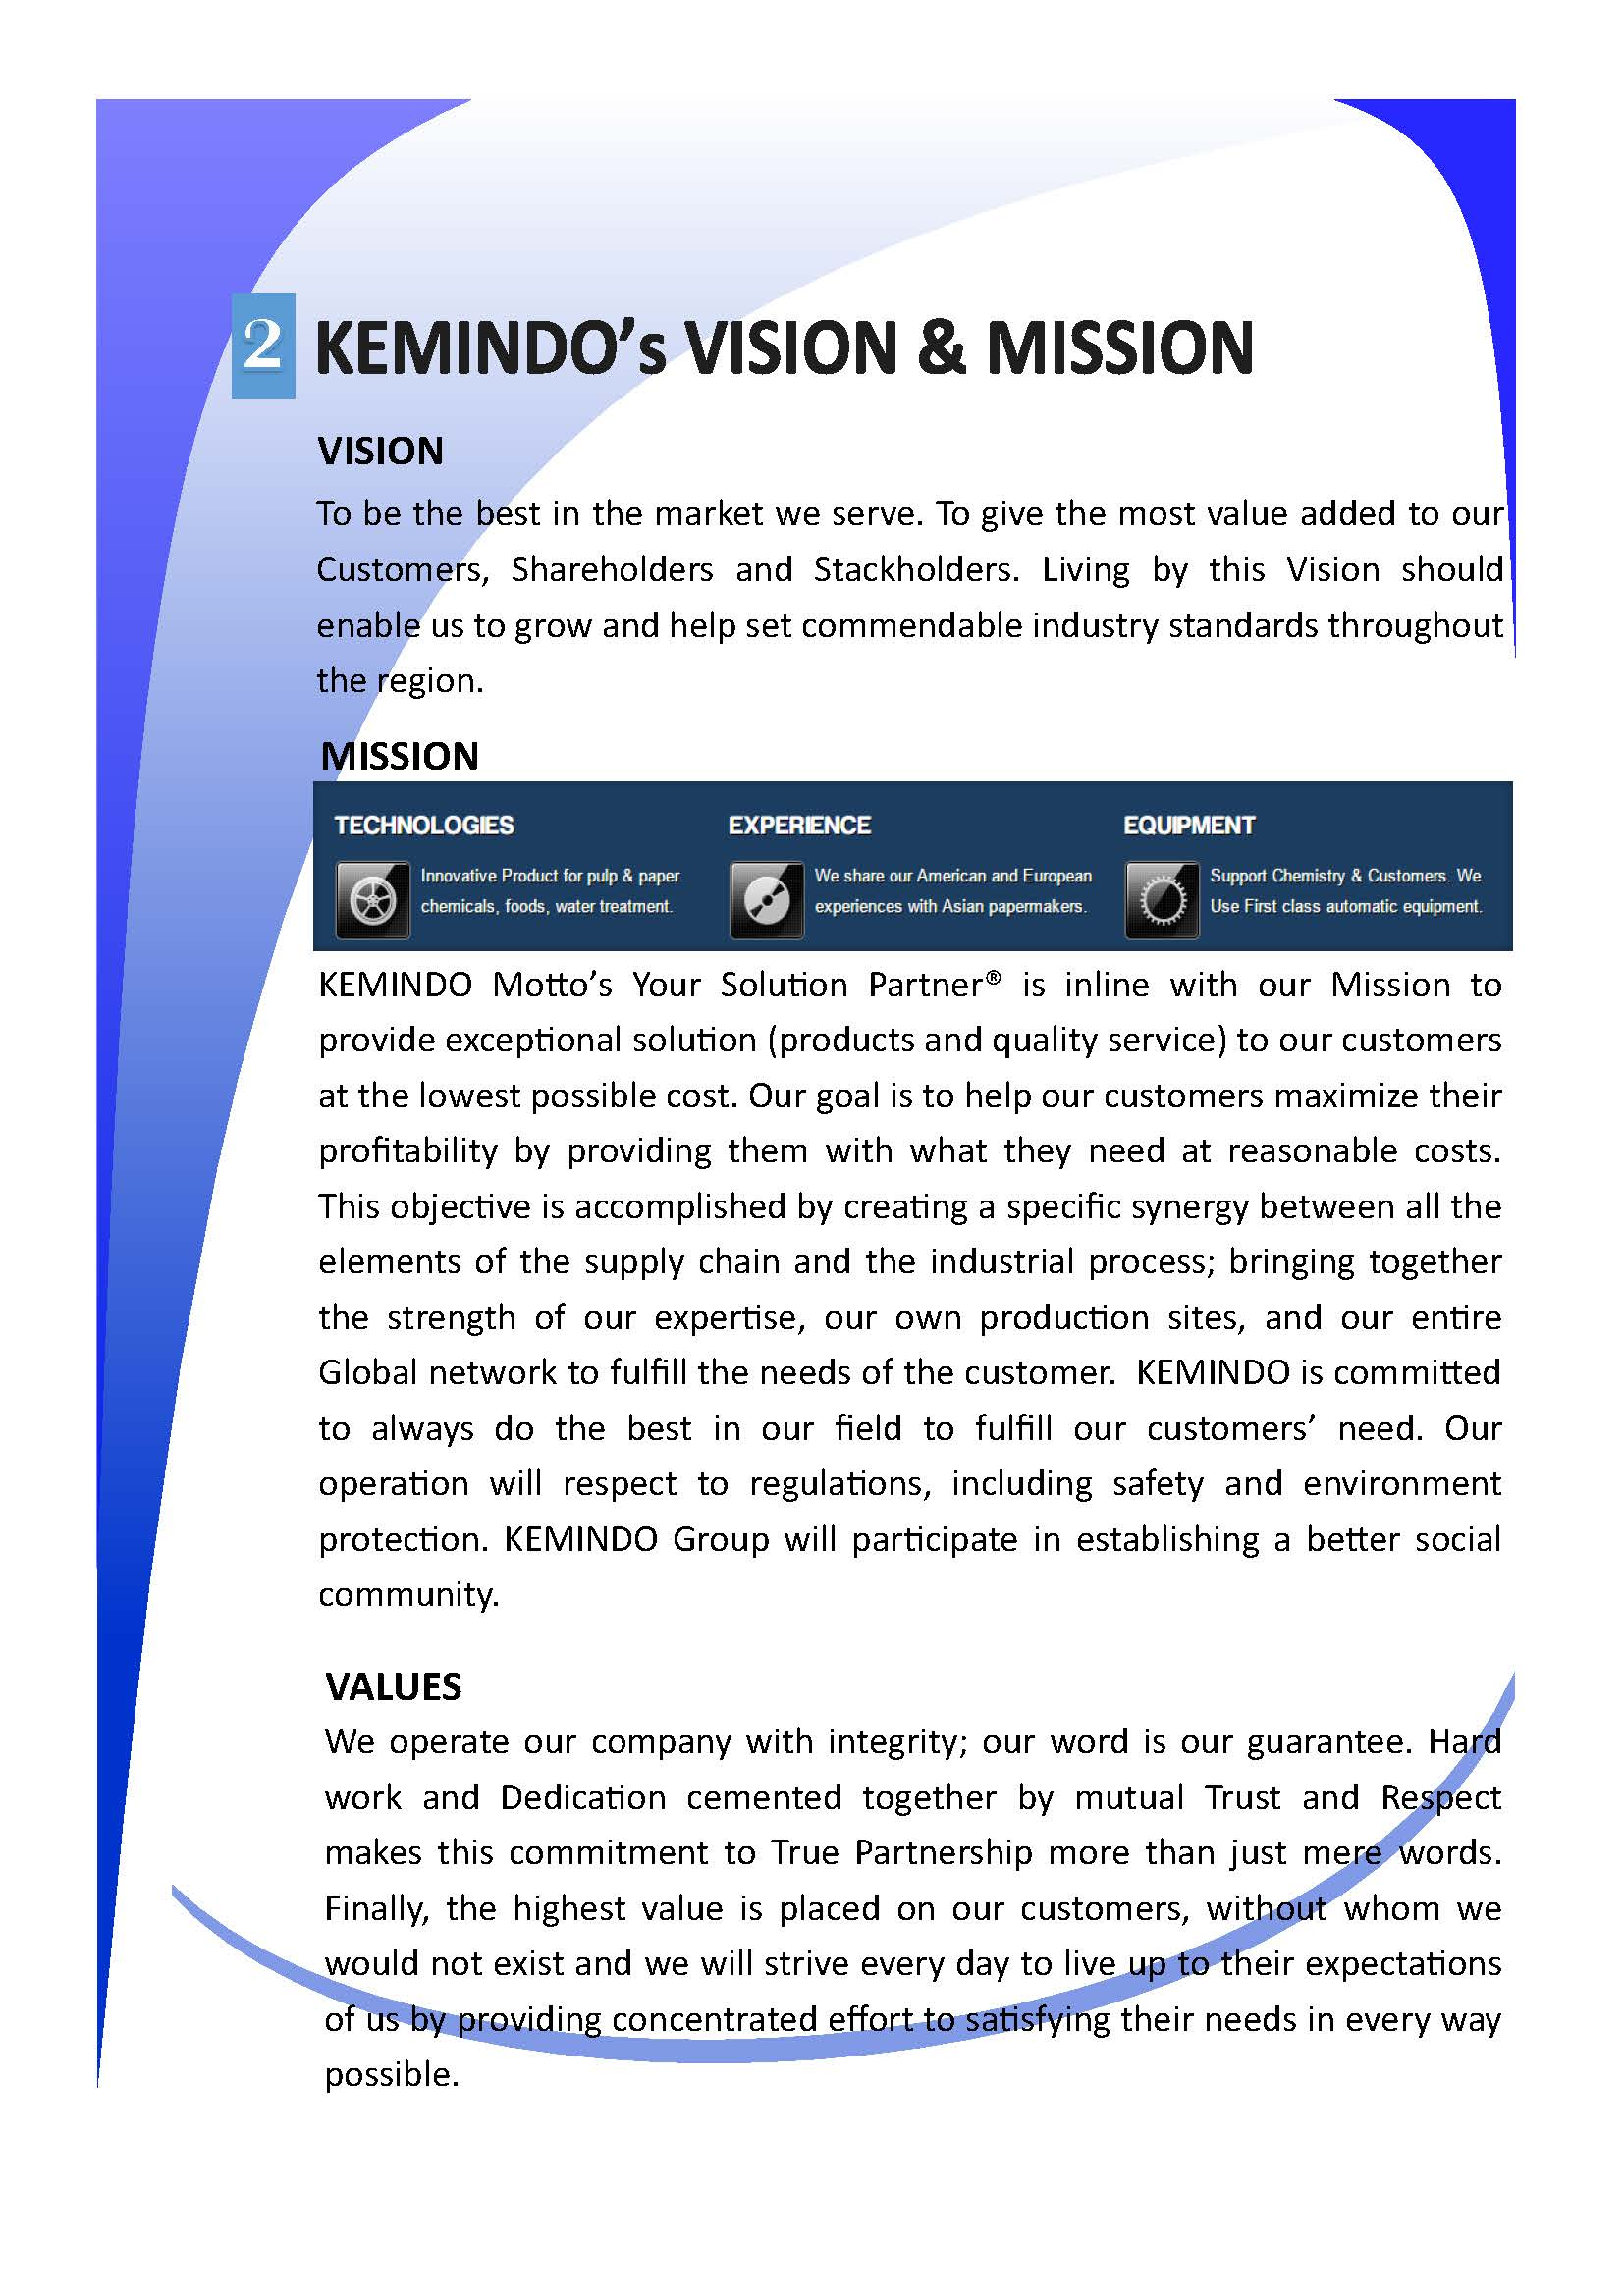 Kemindo - Your Solution Partner®